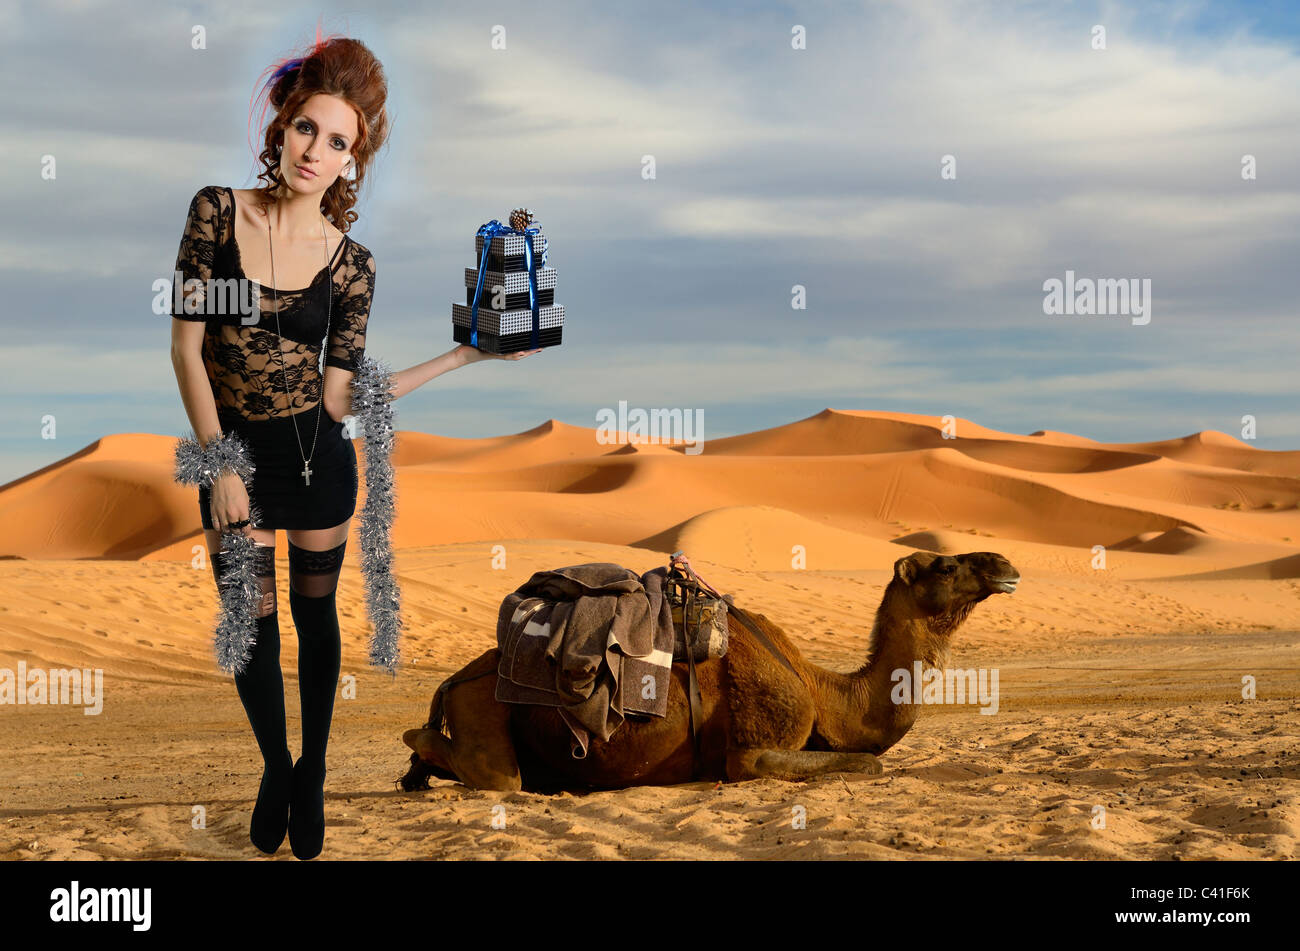 Woman with gifts and Dromedary camel Erg Chebbi desert gold sand dunes Morocco composite - Stock Image